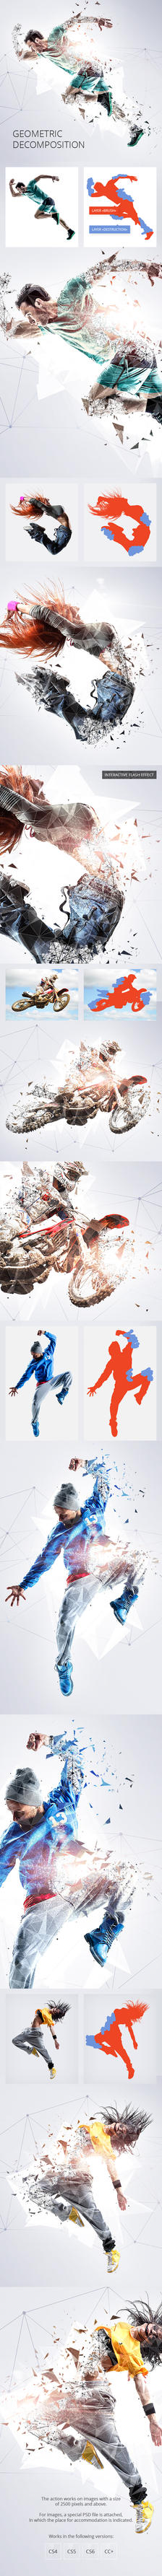 Geometric Decomposition Photoshop Action by GraphicAssets